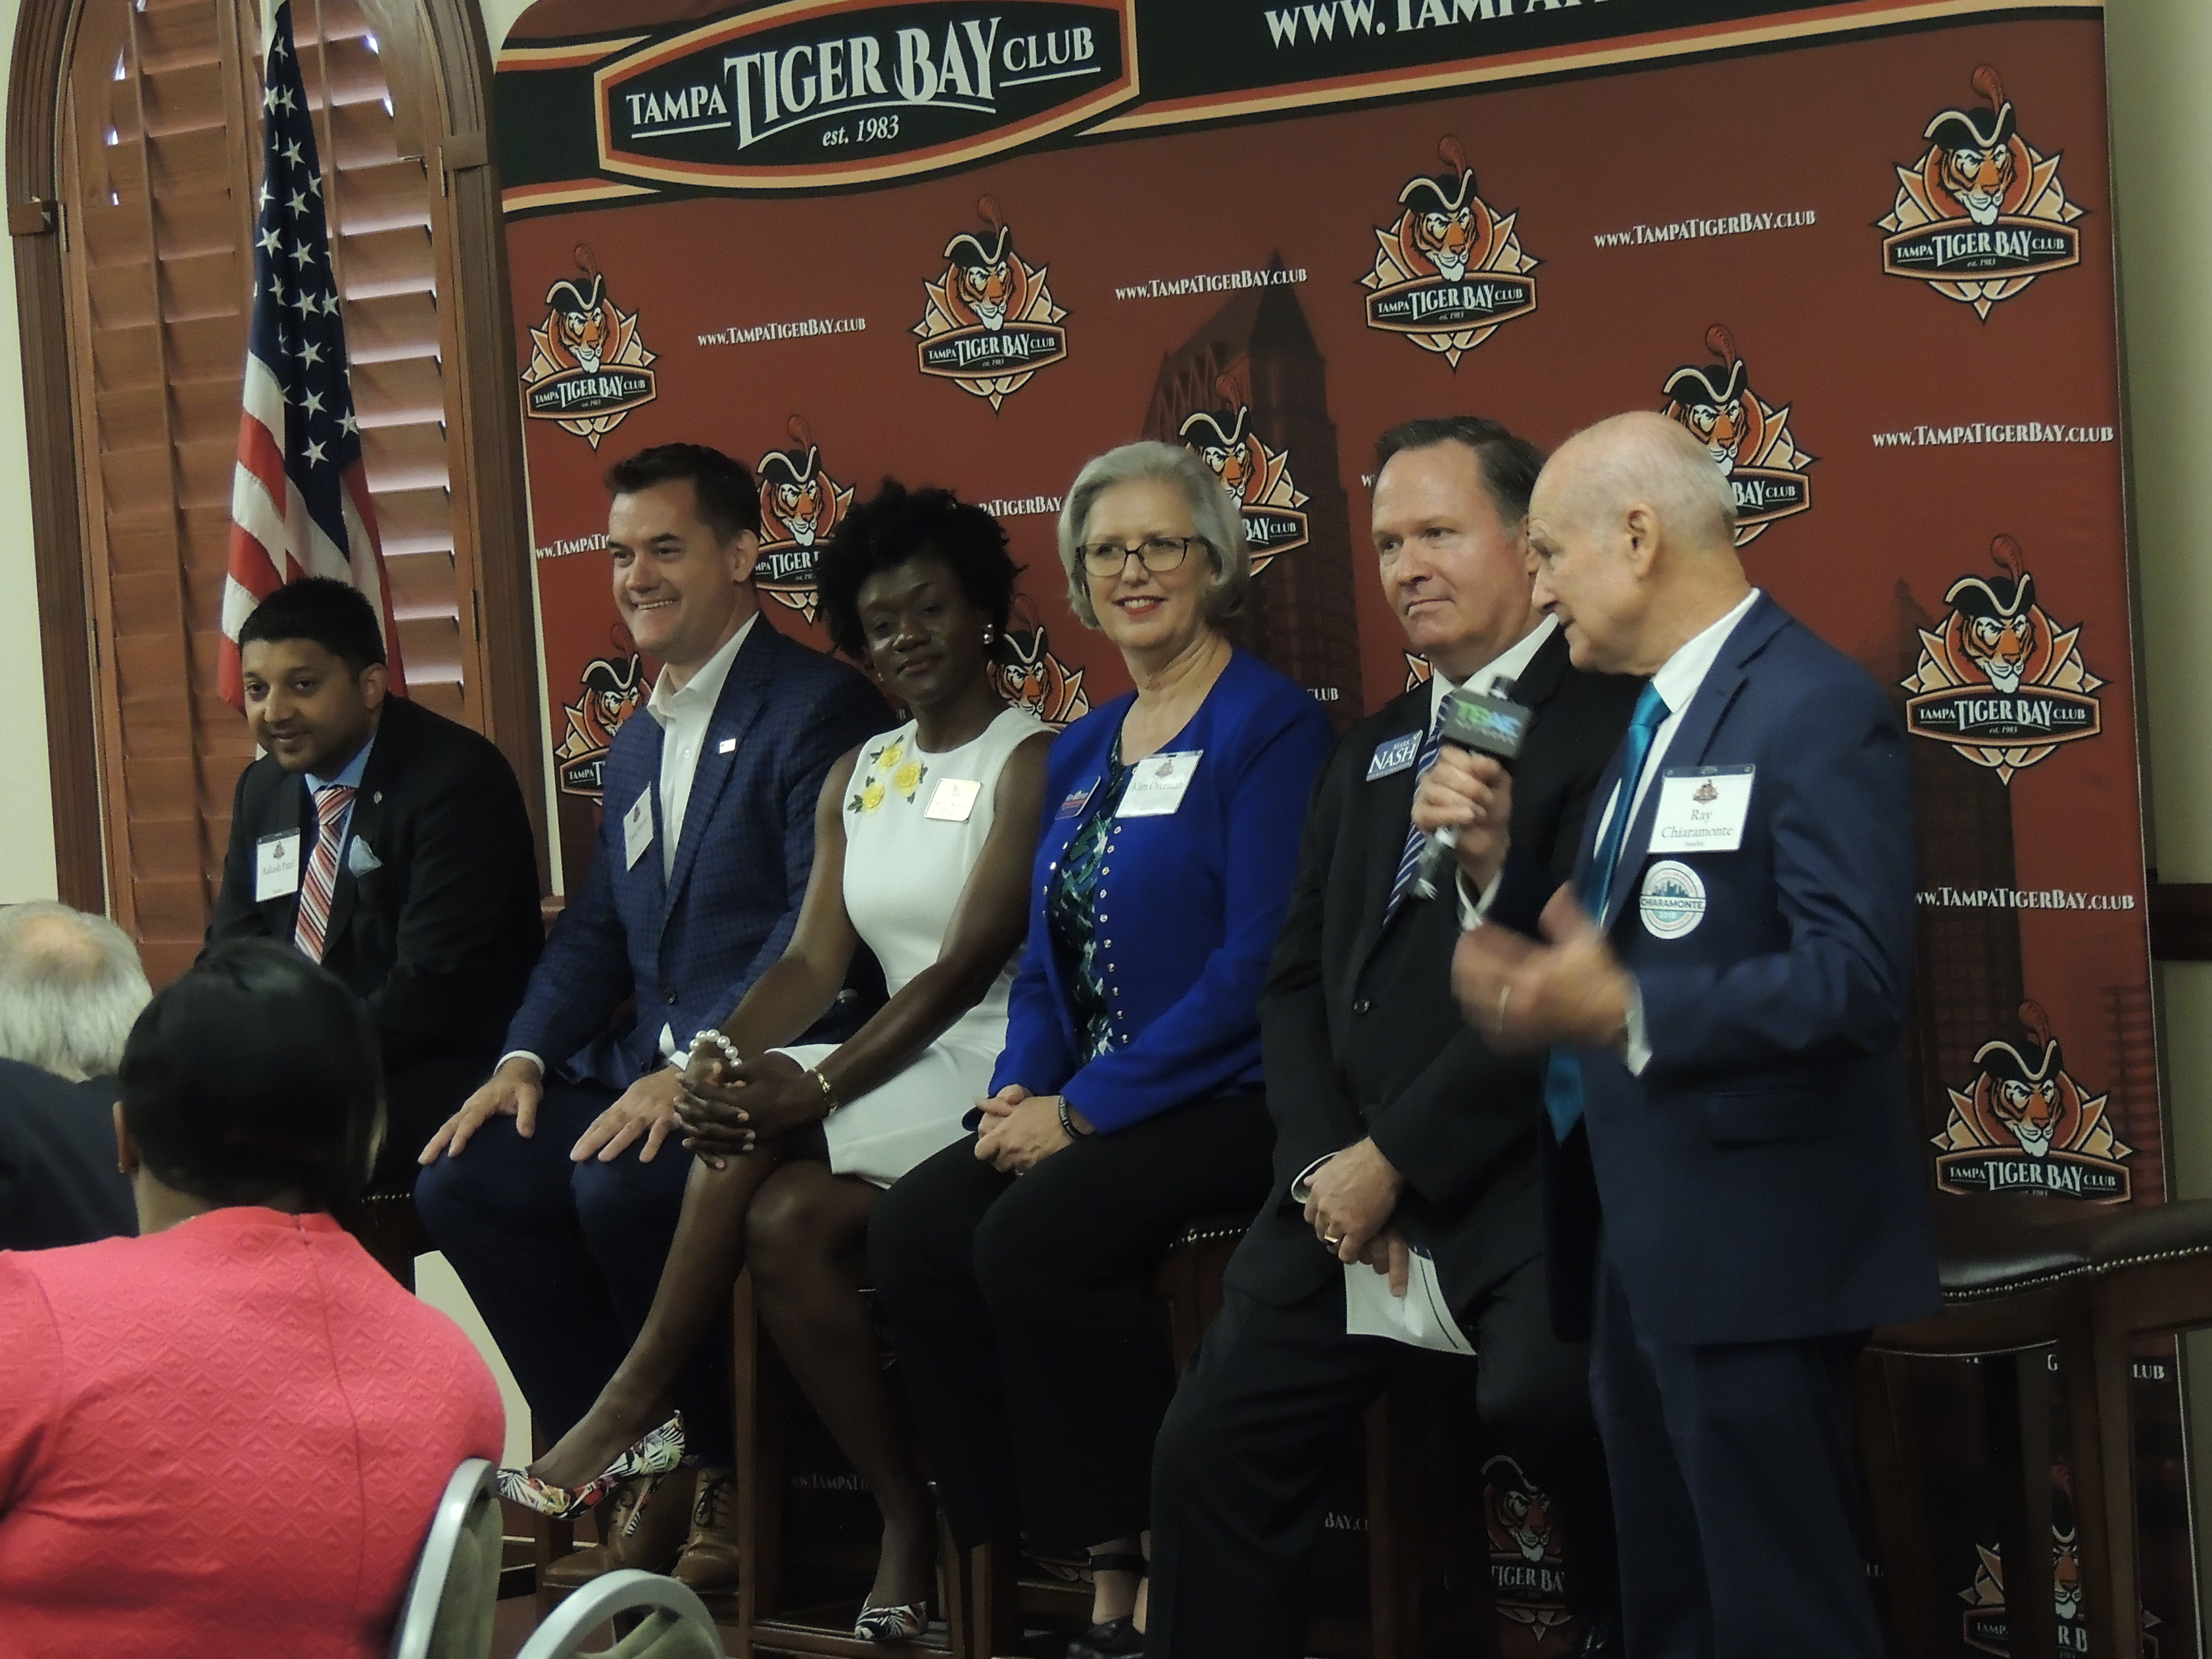 2018 election candidates Hillsborough County Commission